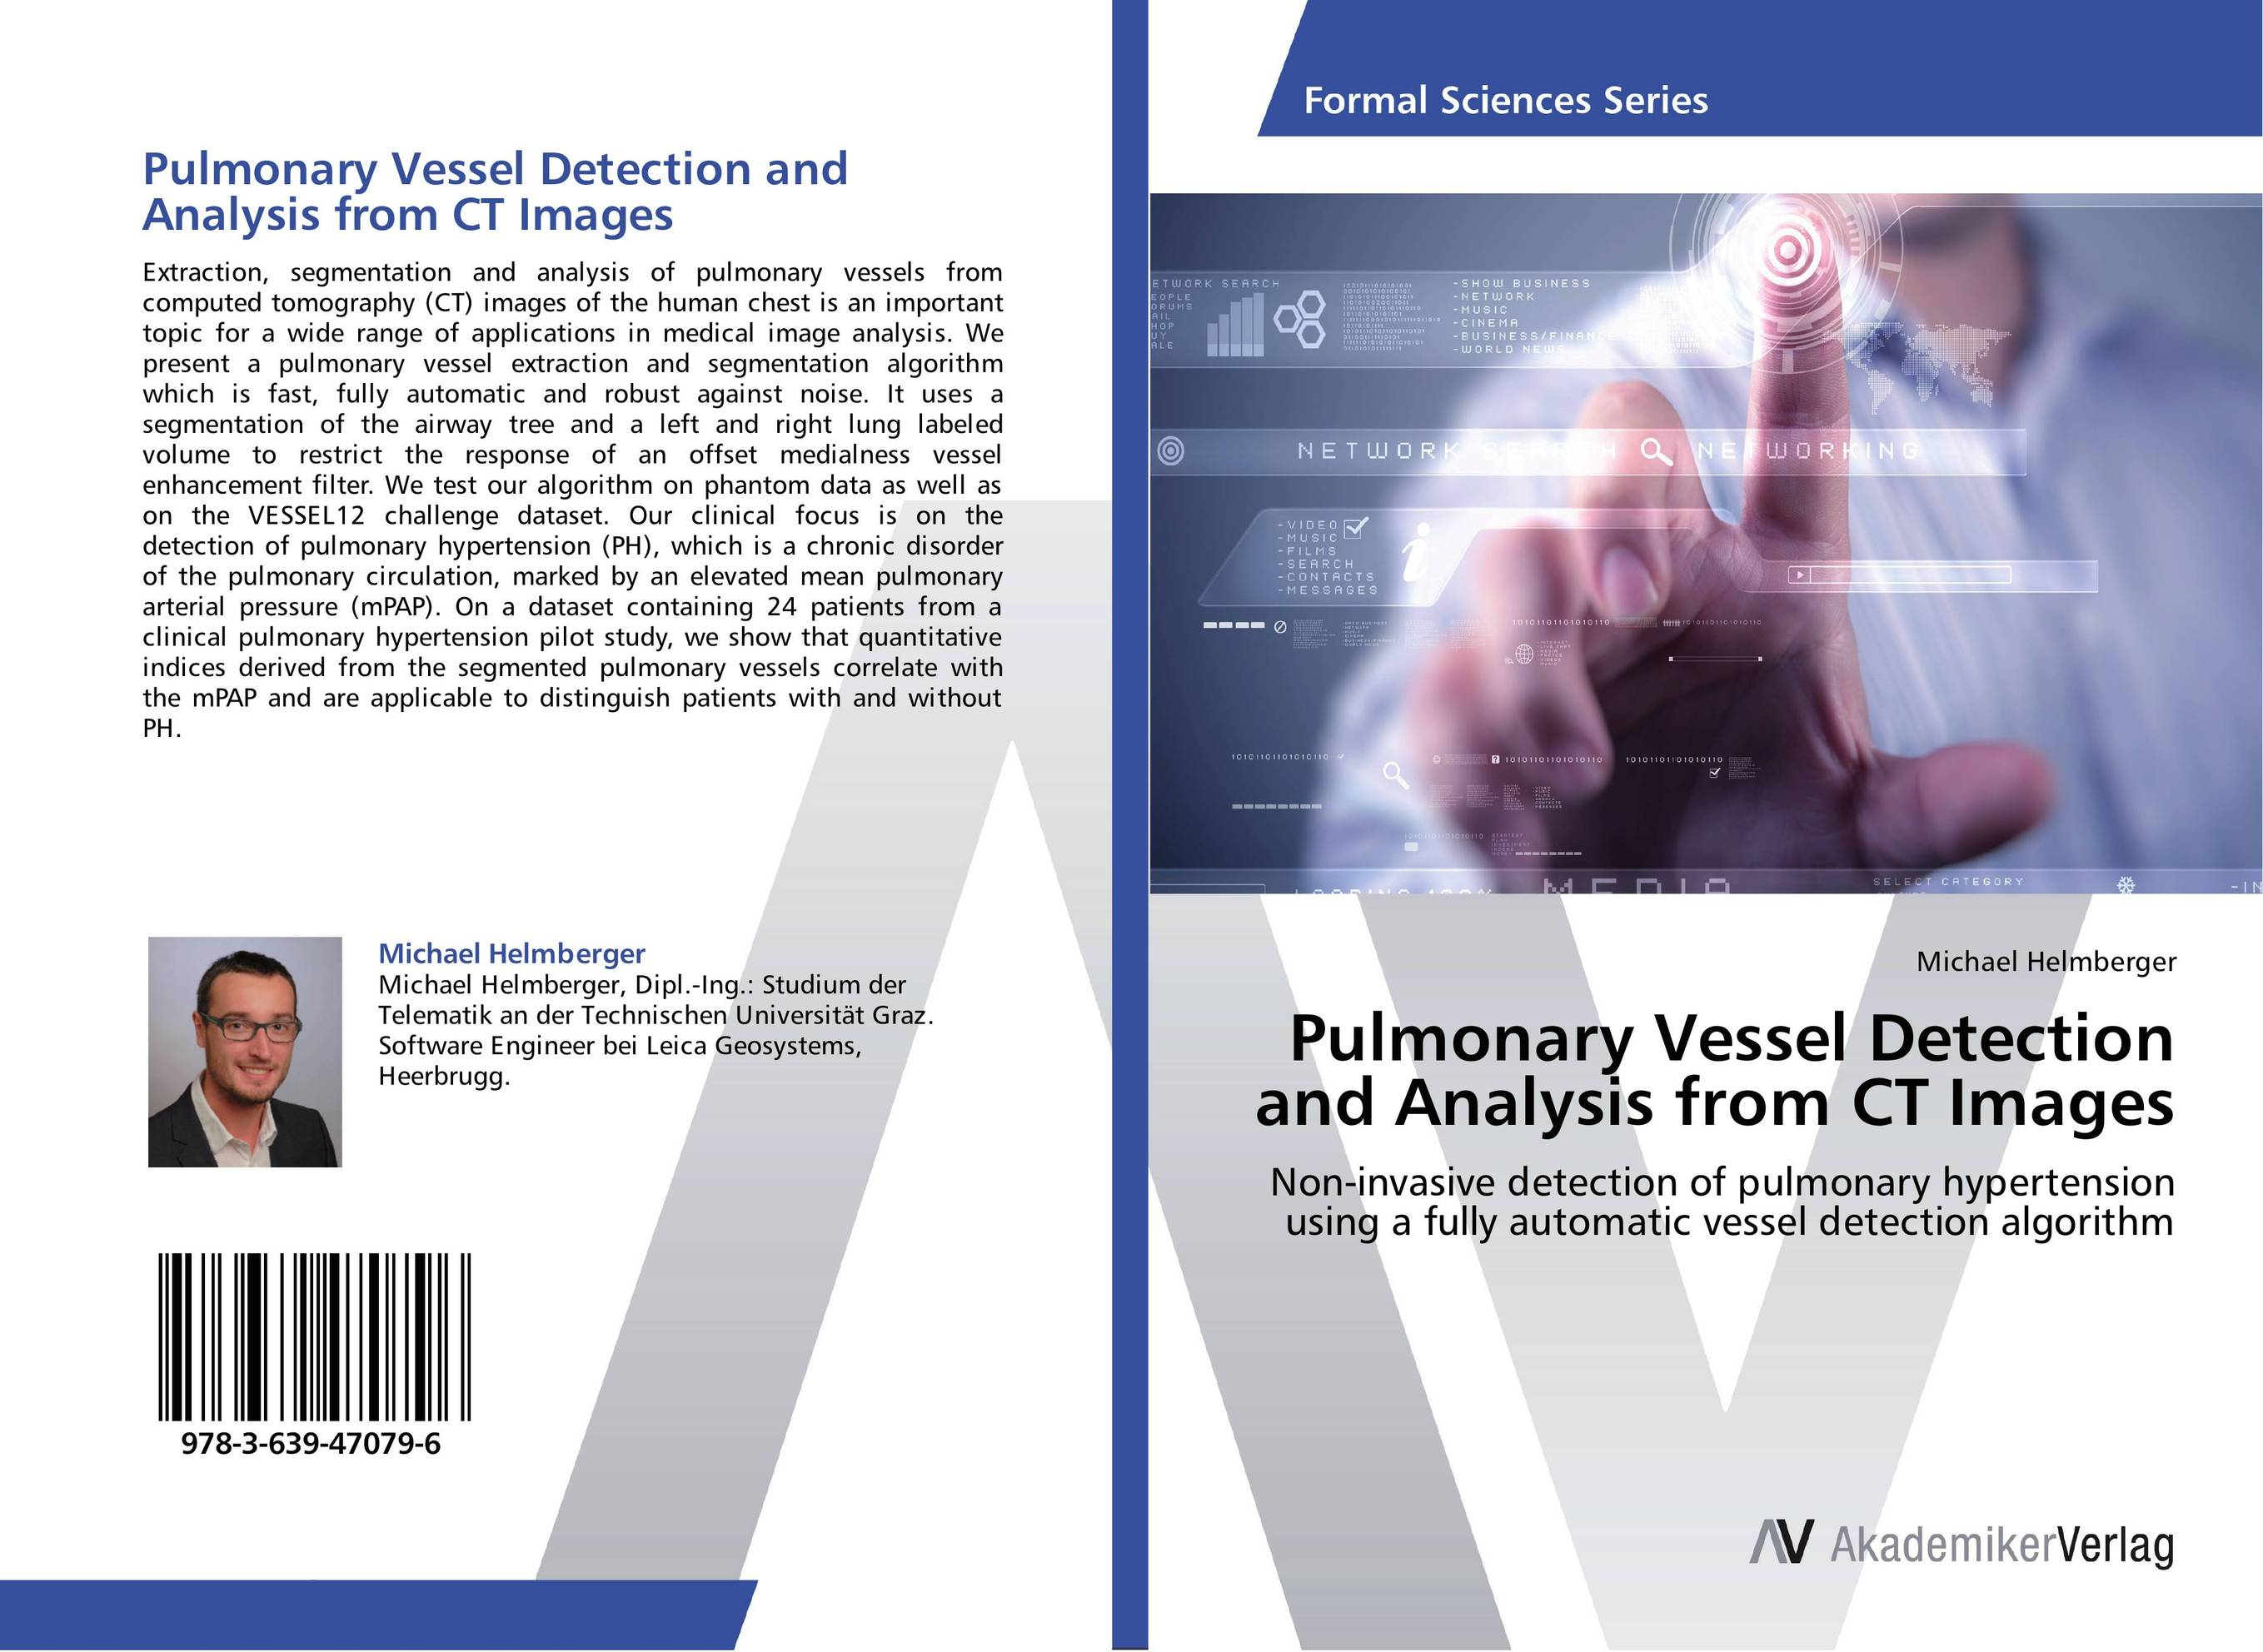 Pulmonary Vessel Detection and Analysis from CT Images